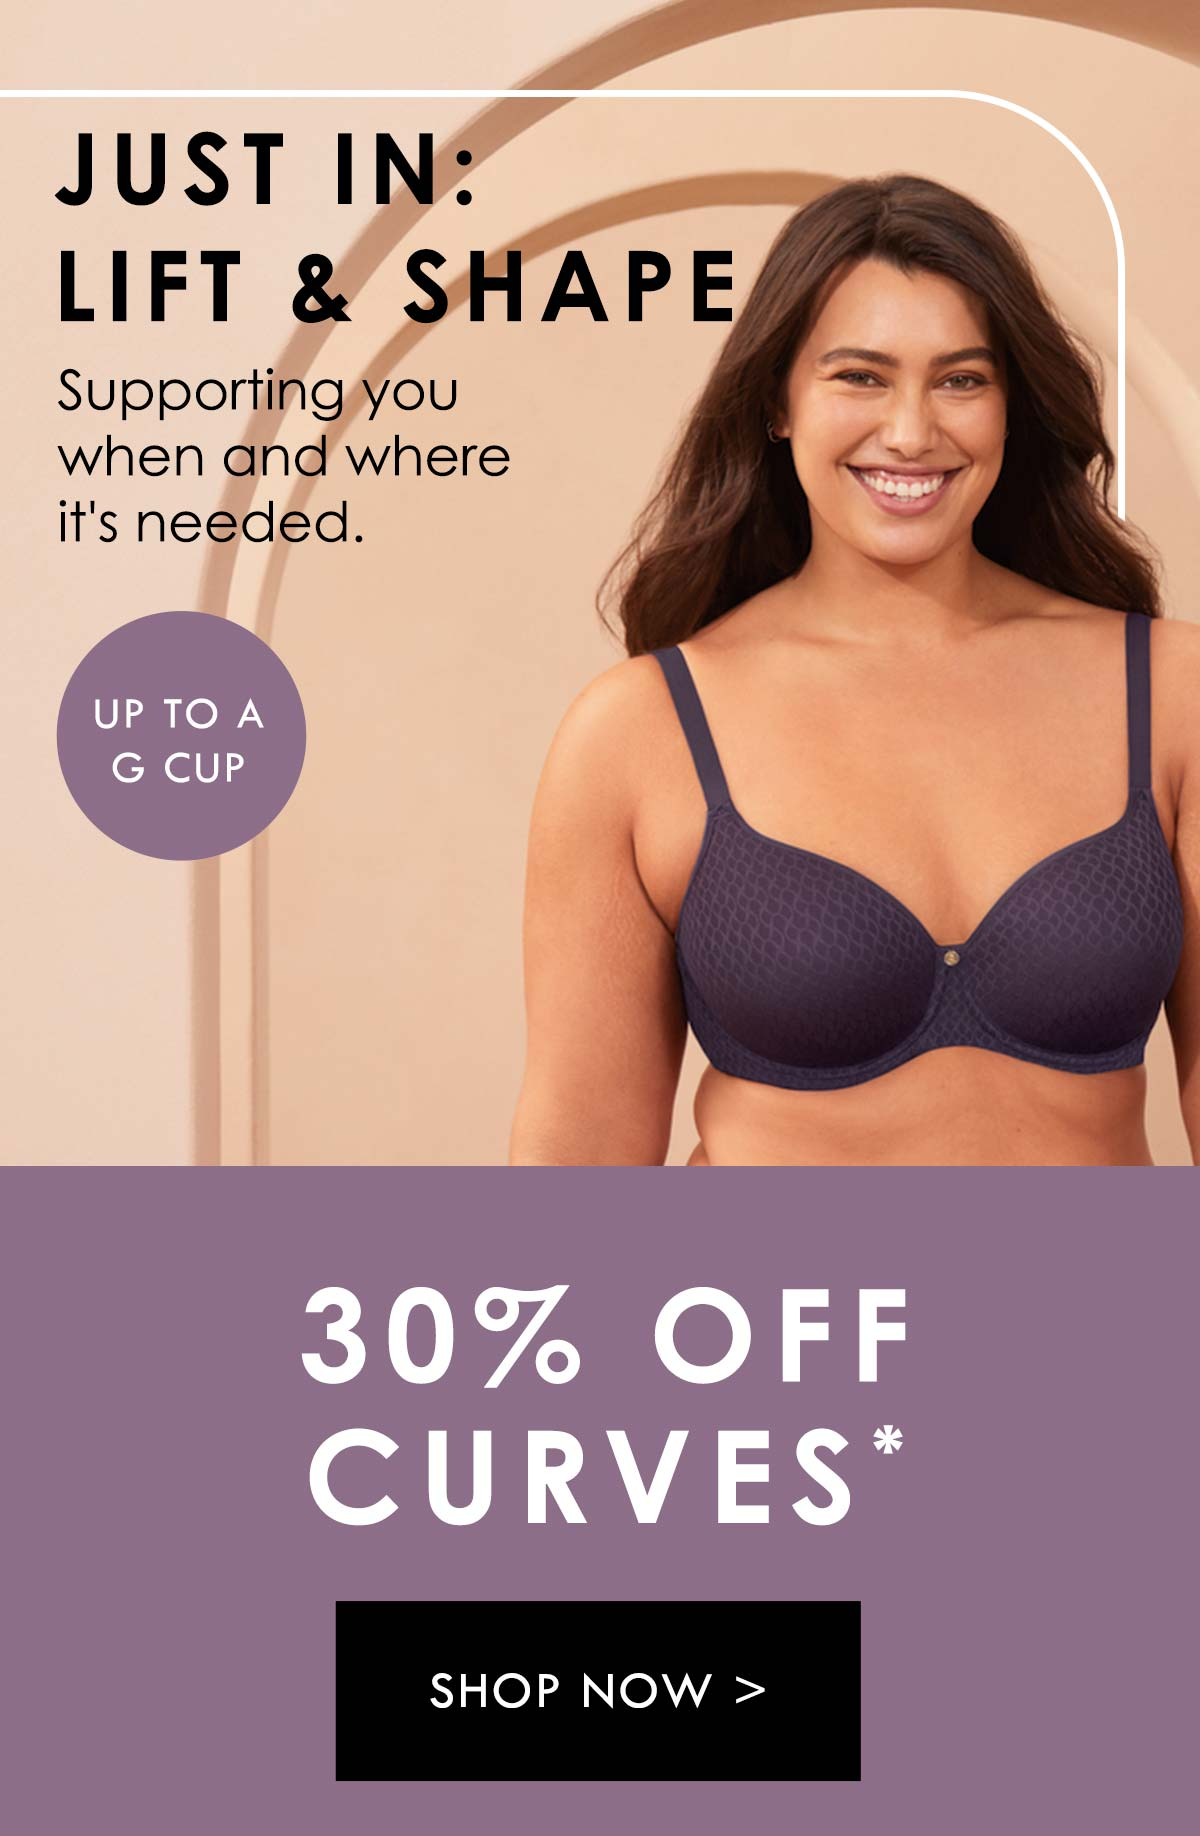 Just in: Lift & Shape. Supporting you when and where it''s needed. 30% Off Curves